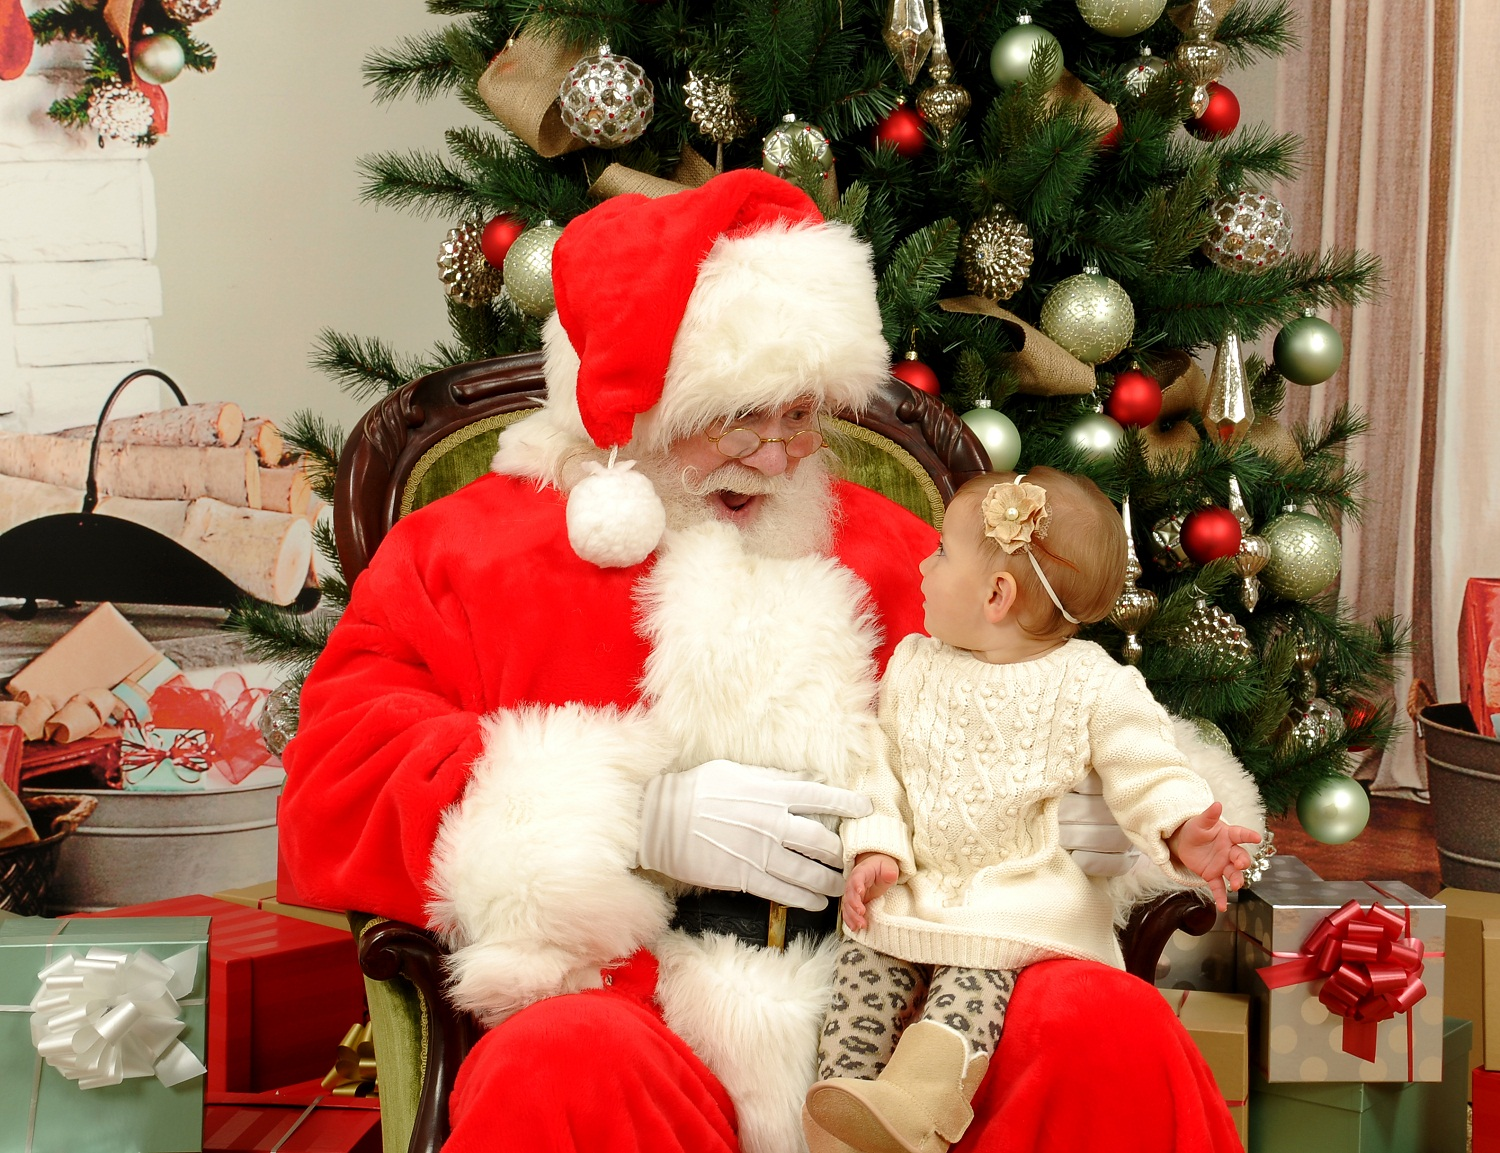 Santa Claus Is Coming To TownPersonal Invitation To Meet